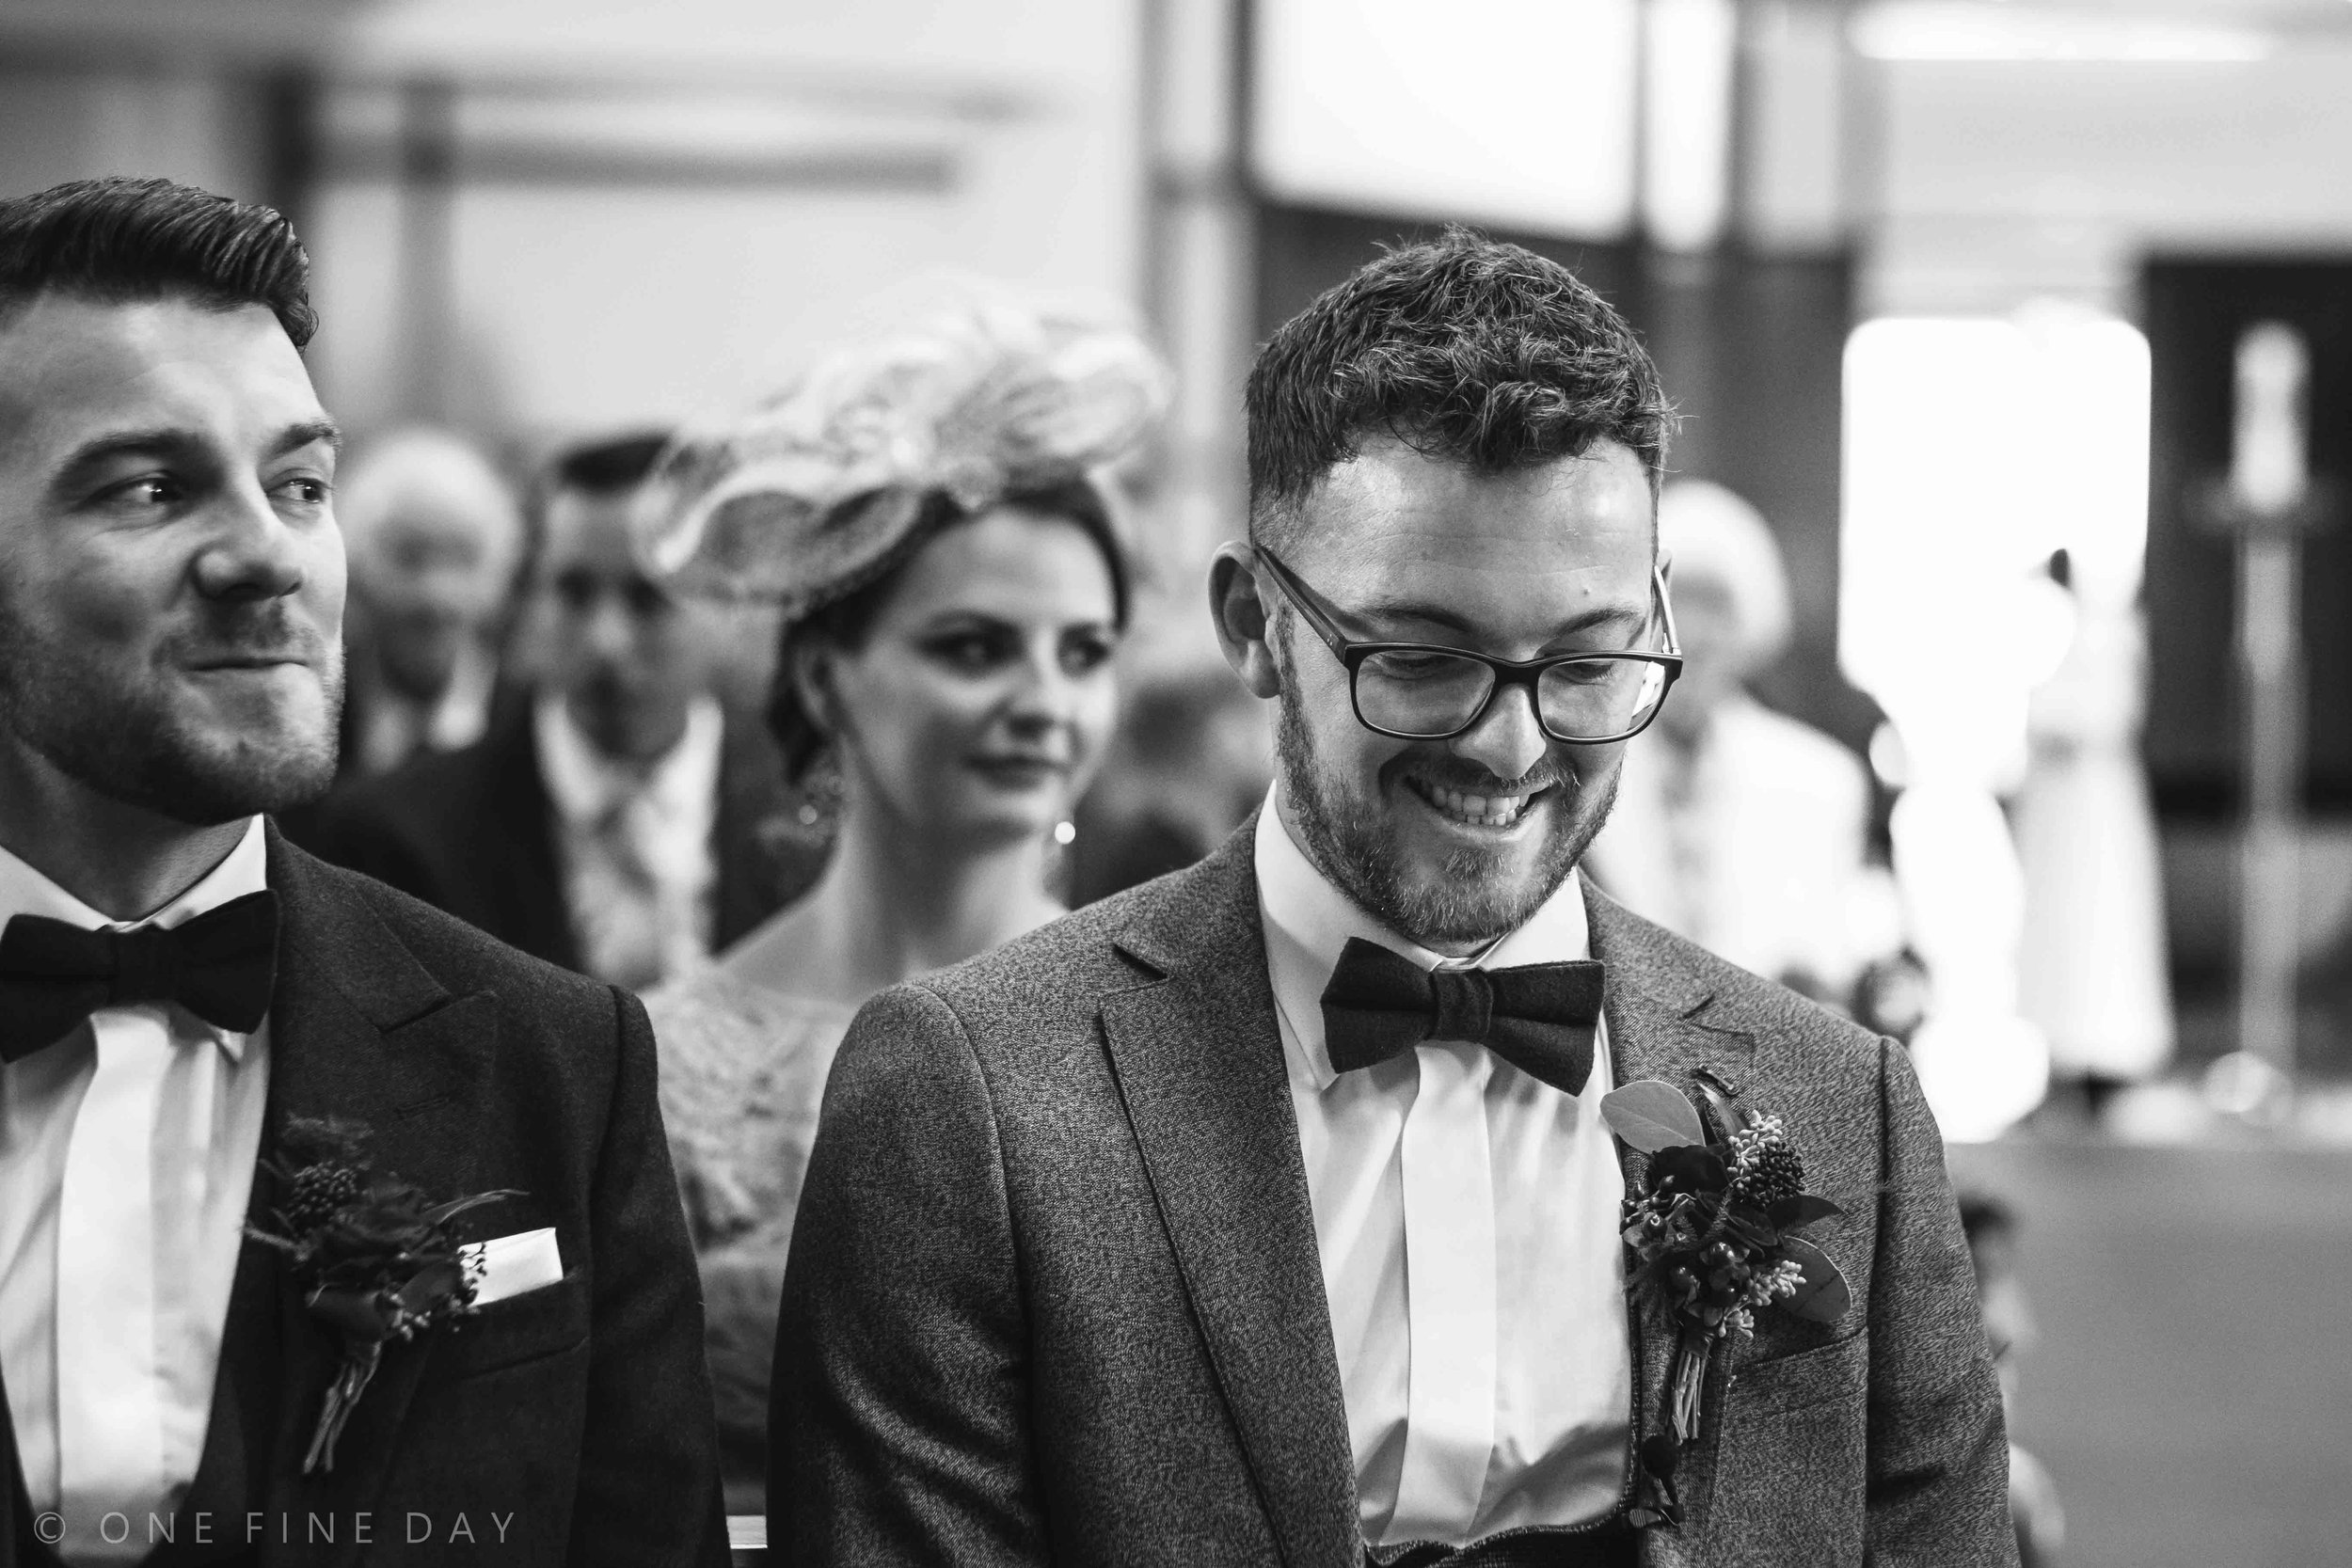 Nervous groom at wedding ceremony in black and white